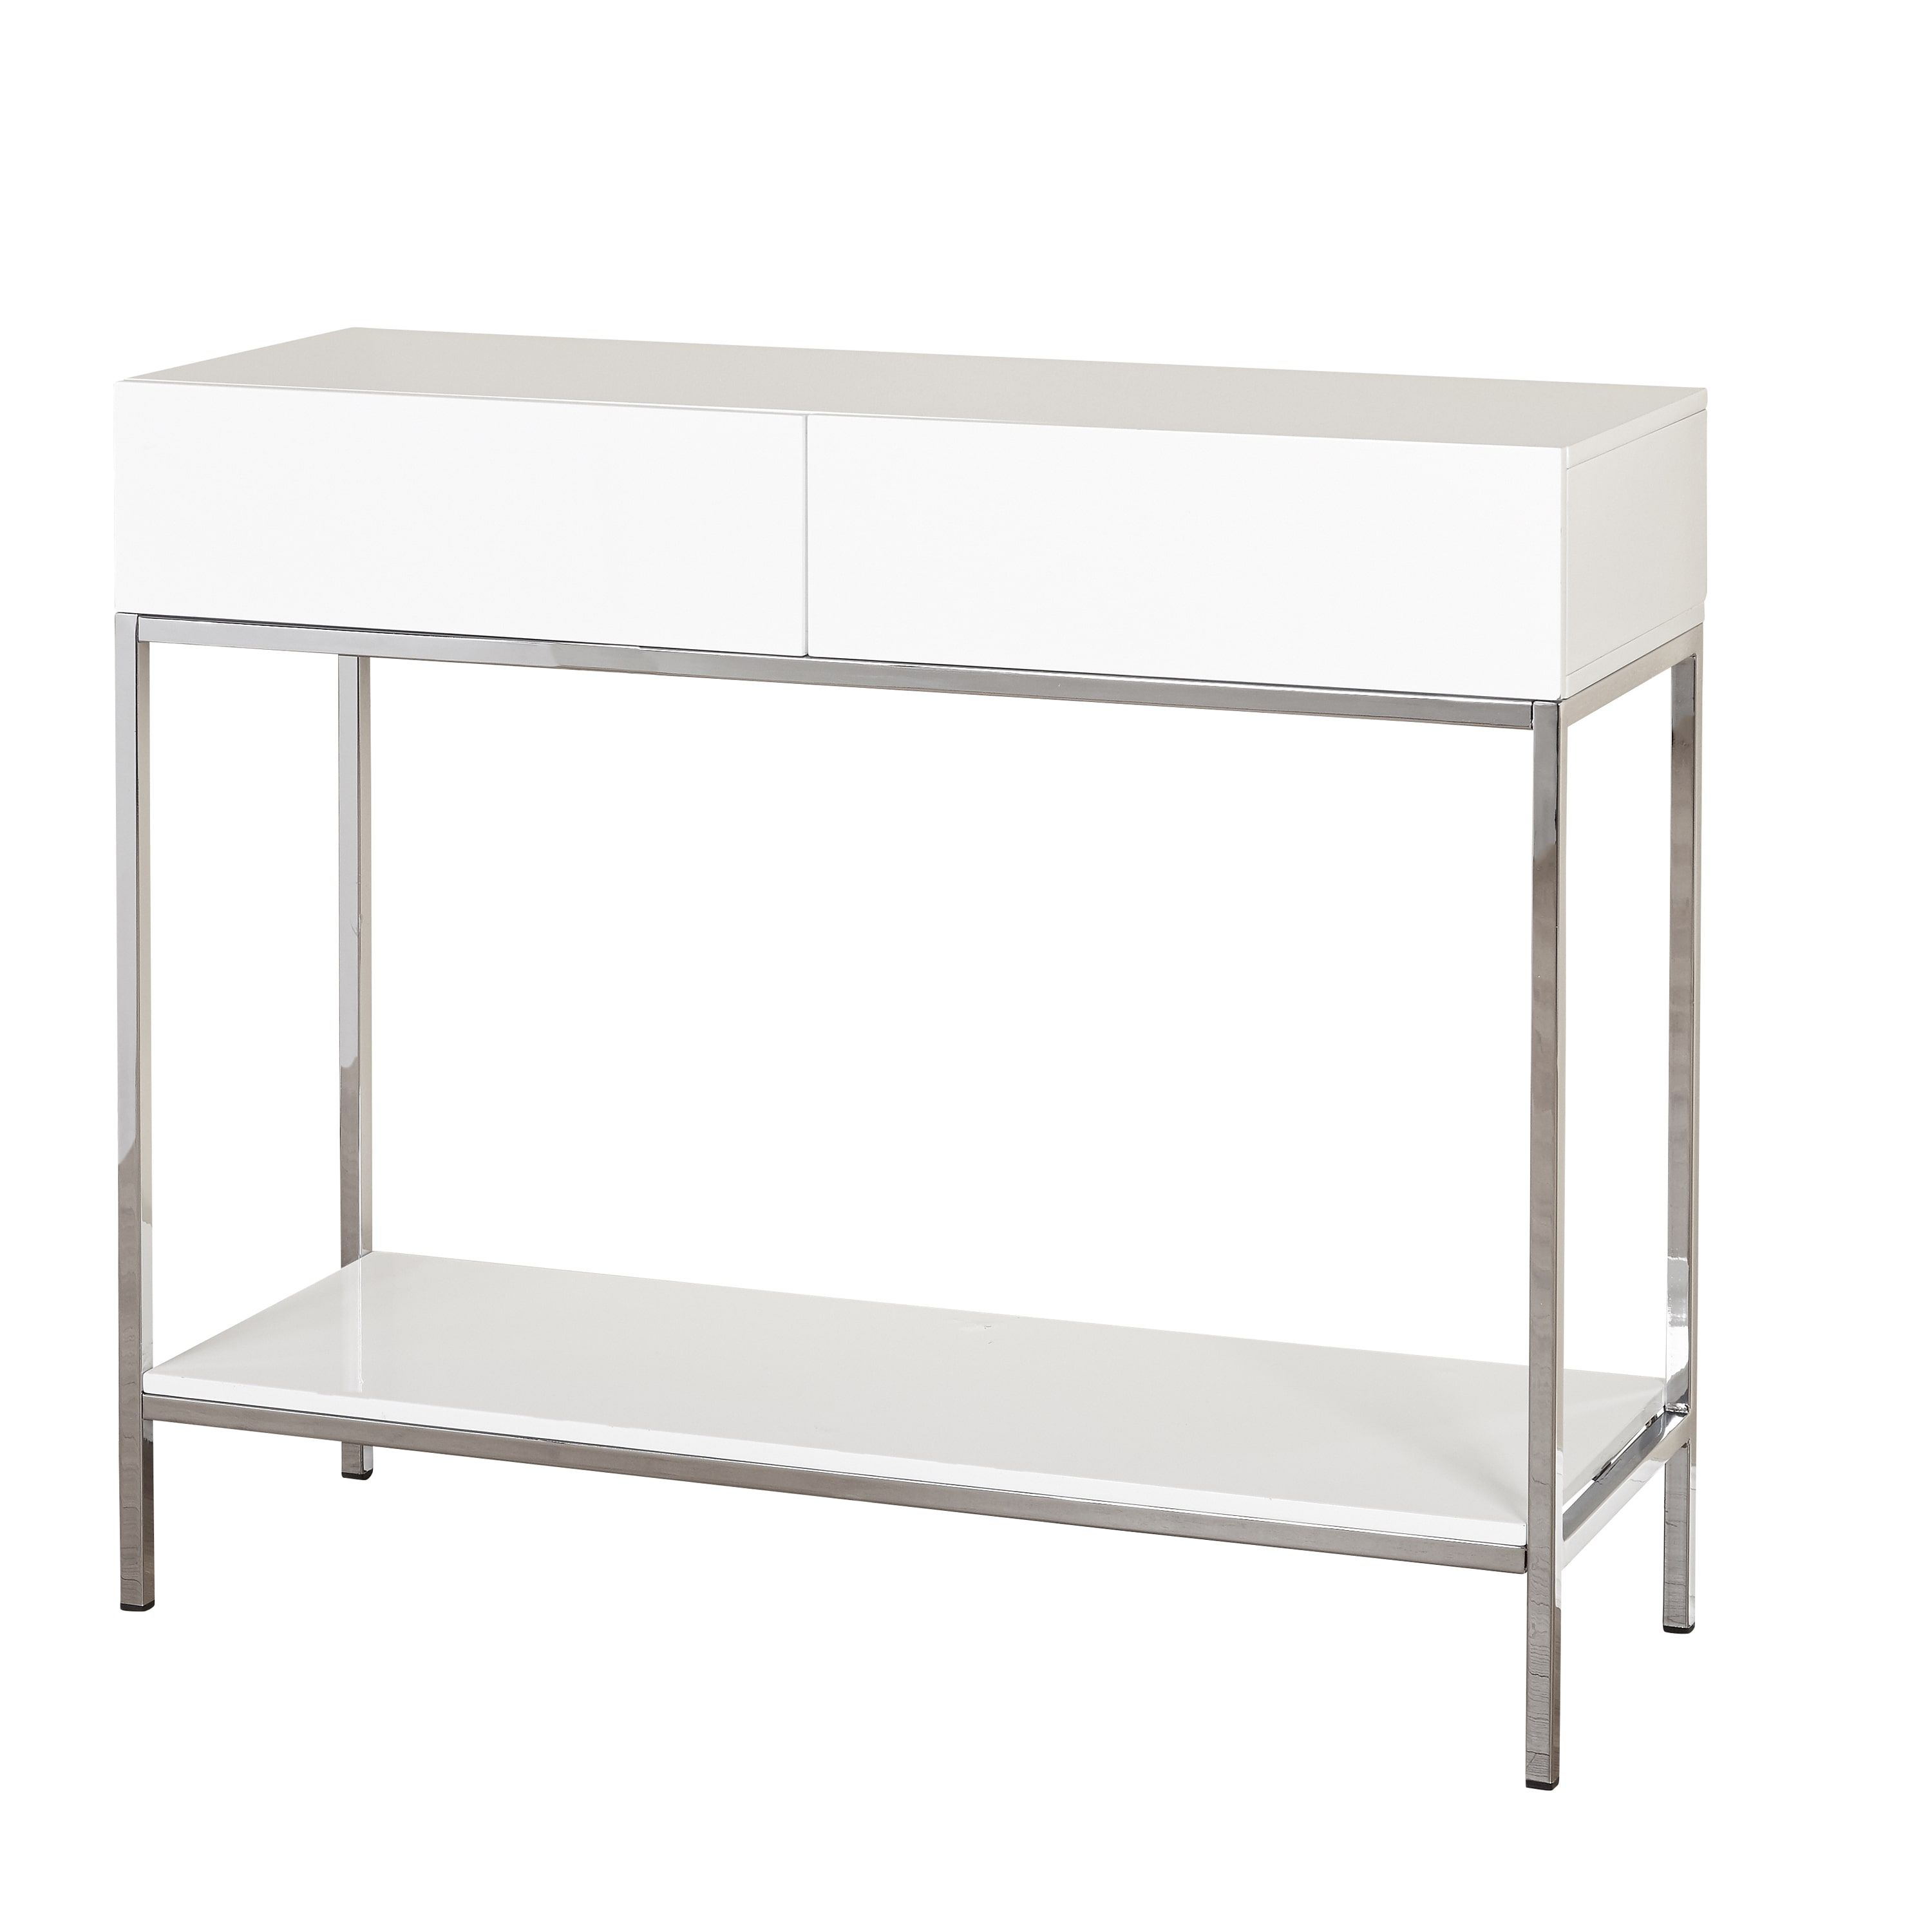 Simple living white wood and chrome metal high gloss console table simple living white wood and chrome metal high gloss console table high gloss console table geotapseo Gallery